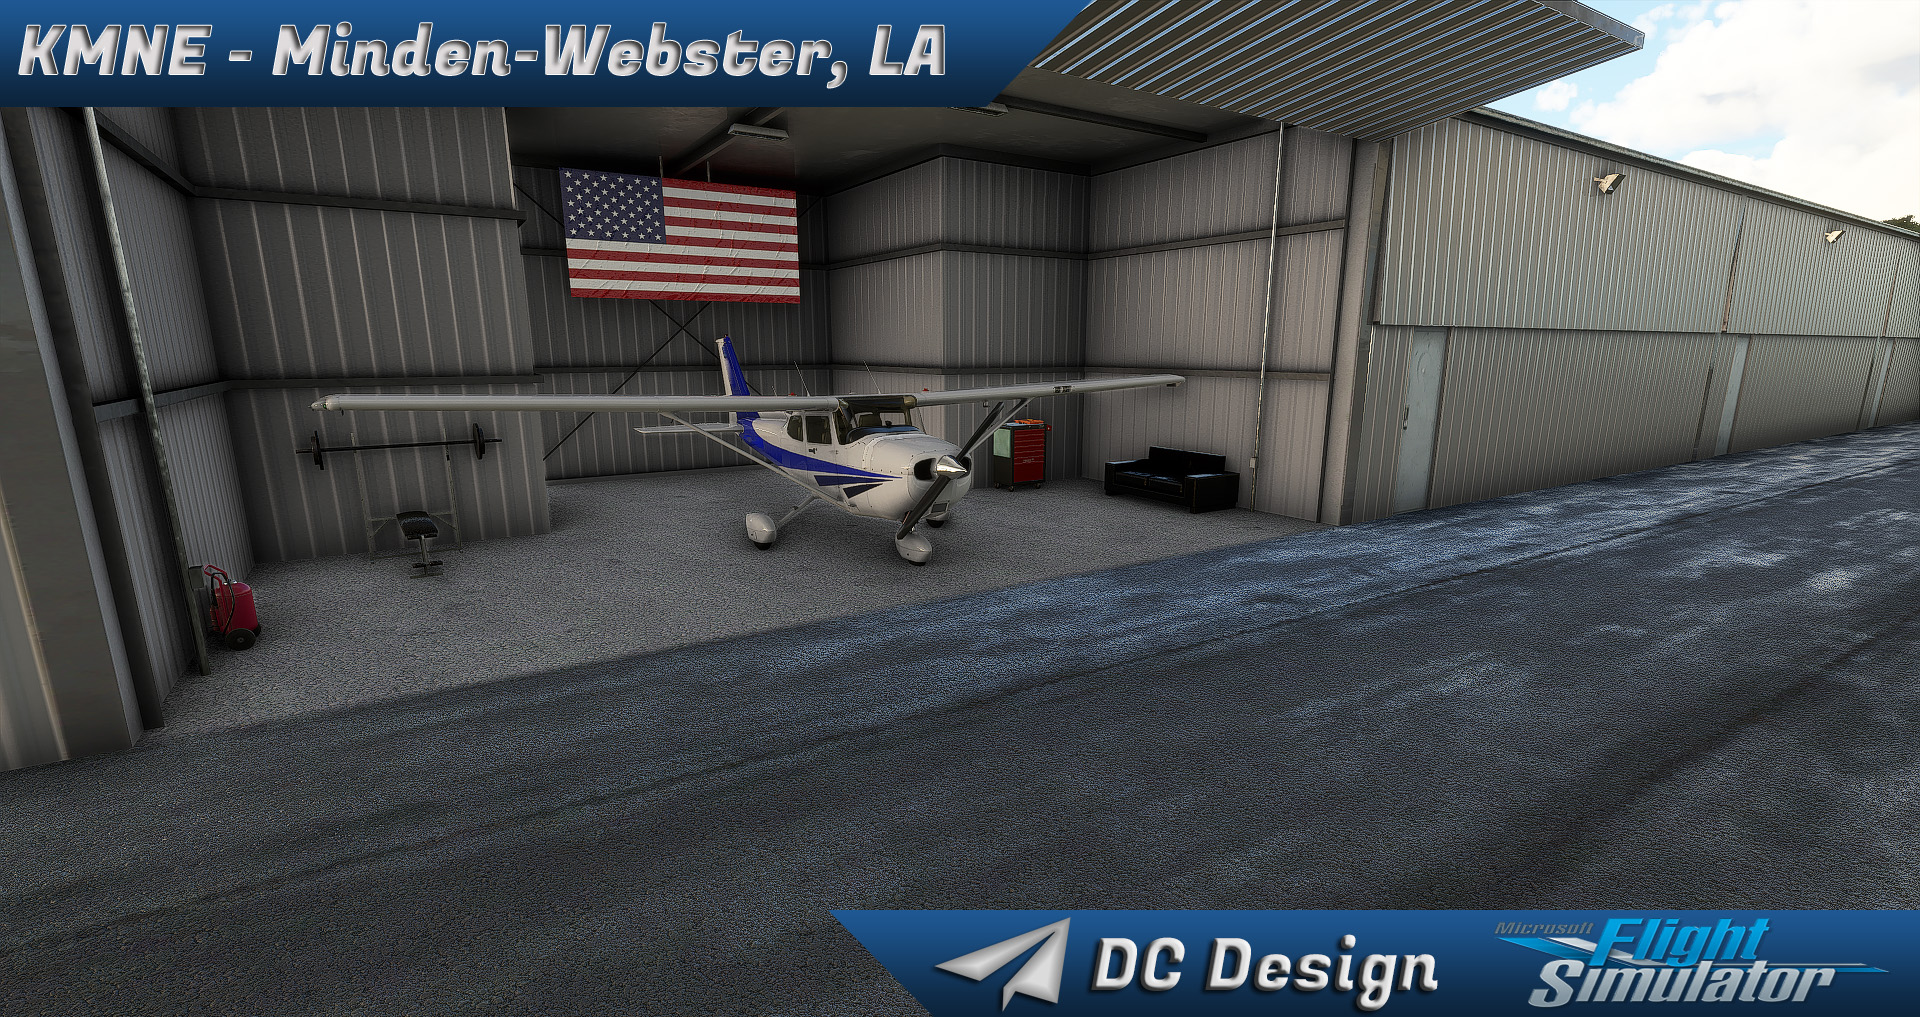 DC SCENERY DESIGN - KMNE - MINDEN-WEBSTER - MSFS